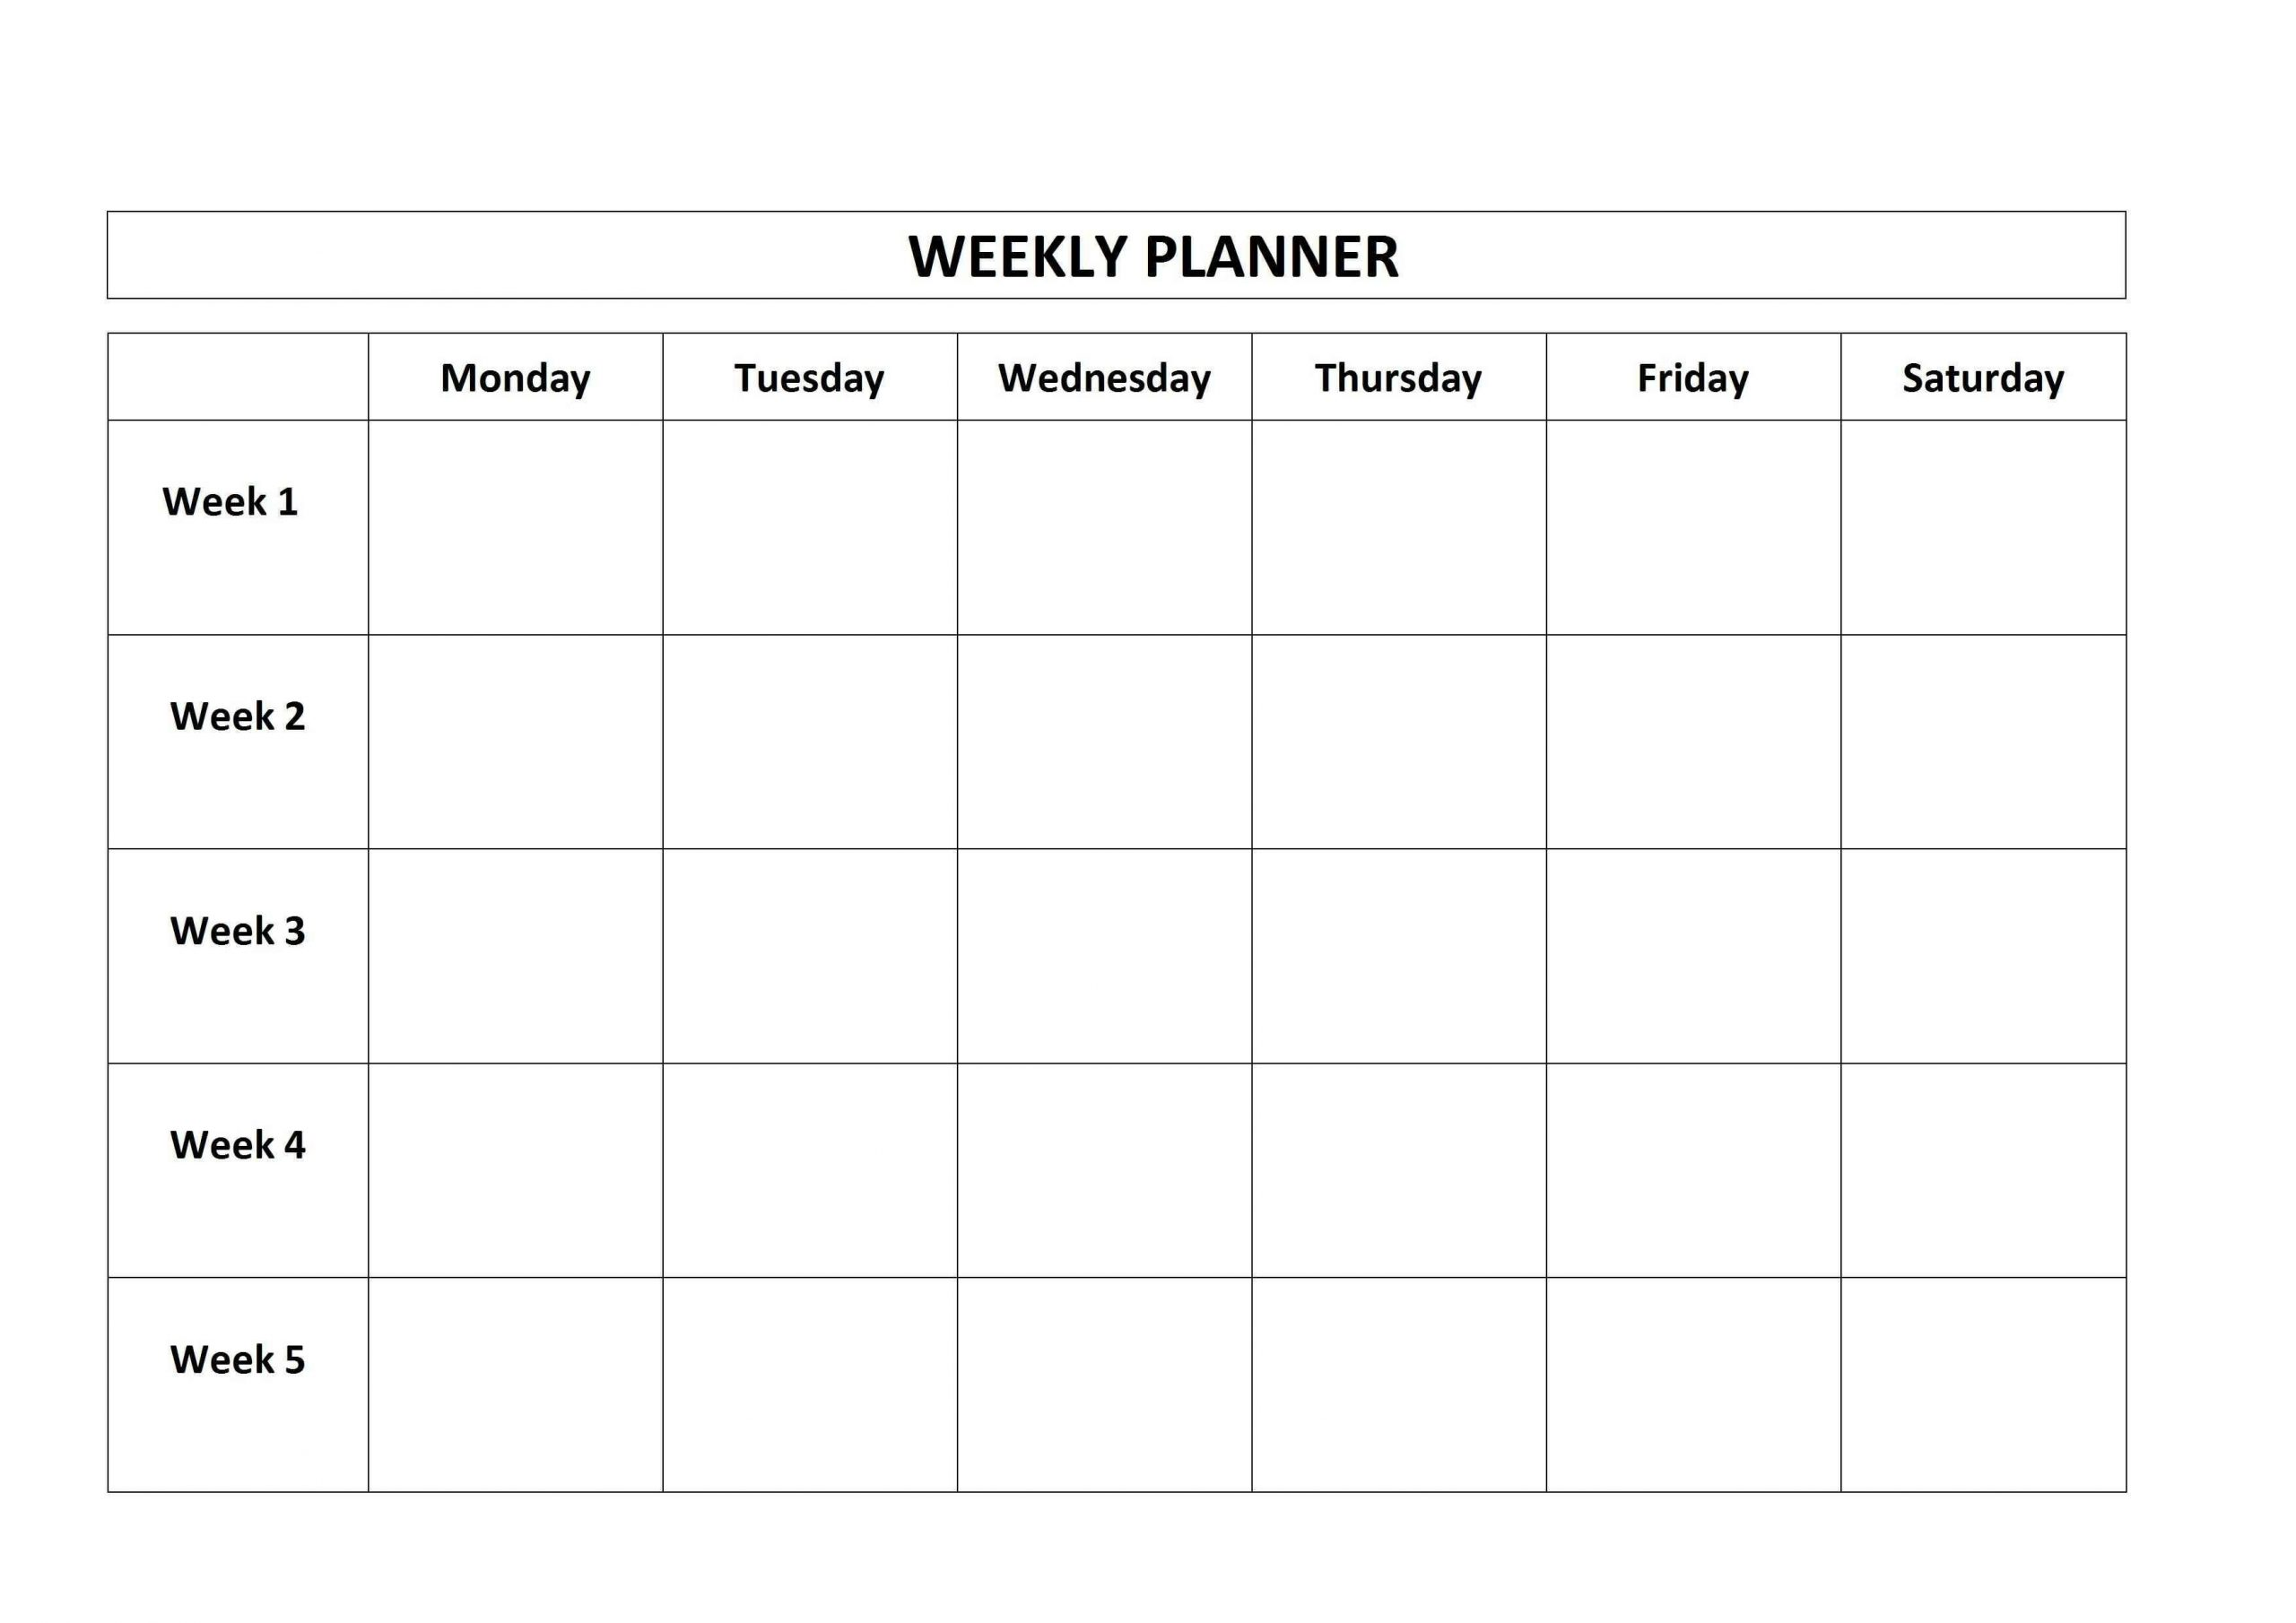 Monday Through Friday Template   Calendar Template Printable Free Printable Weekly Schedule Monday Fridays